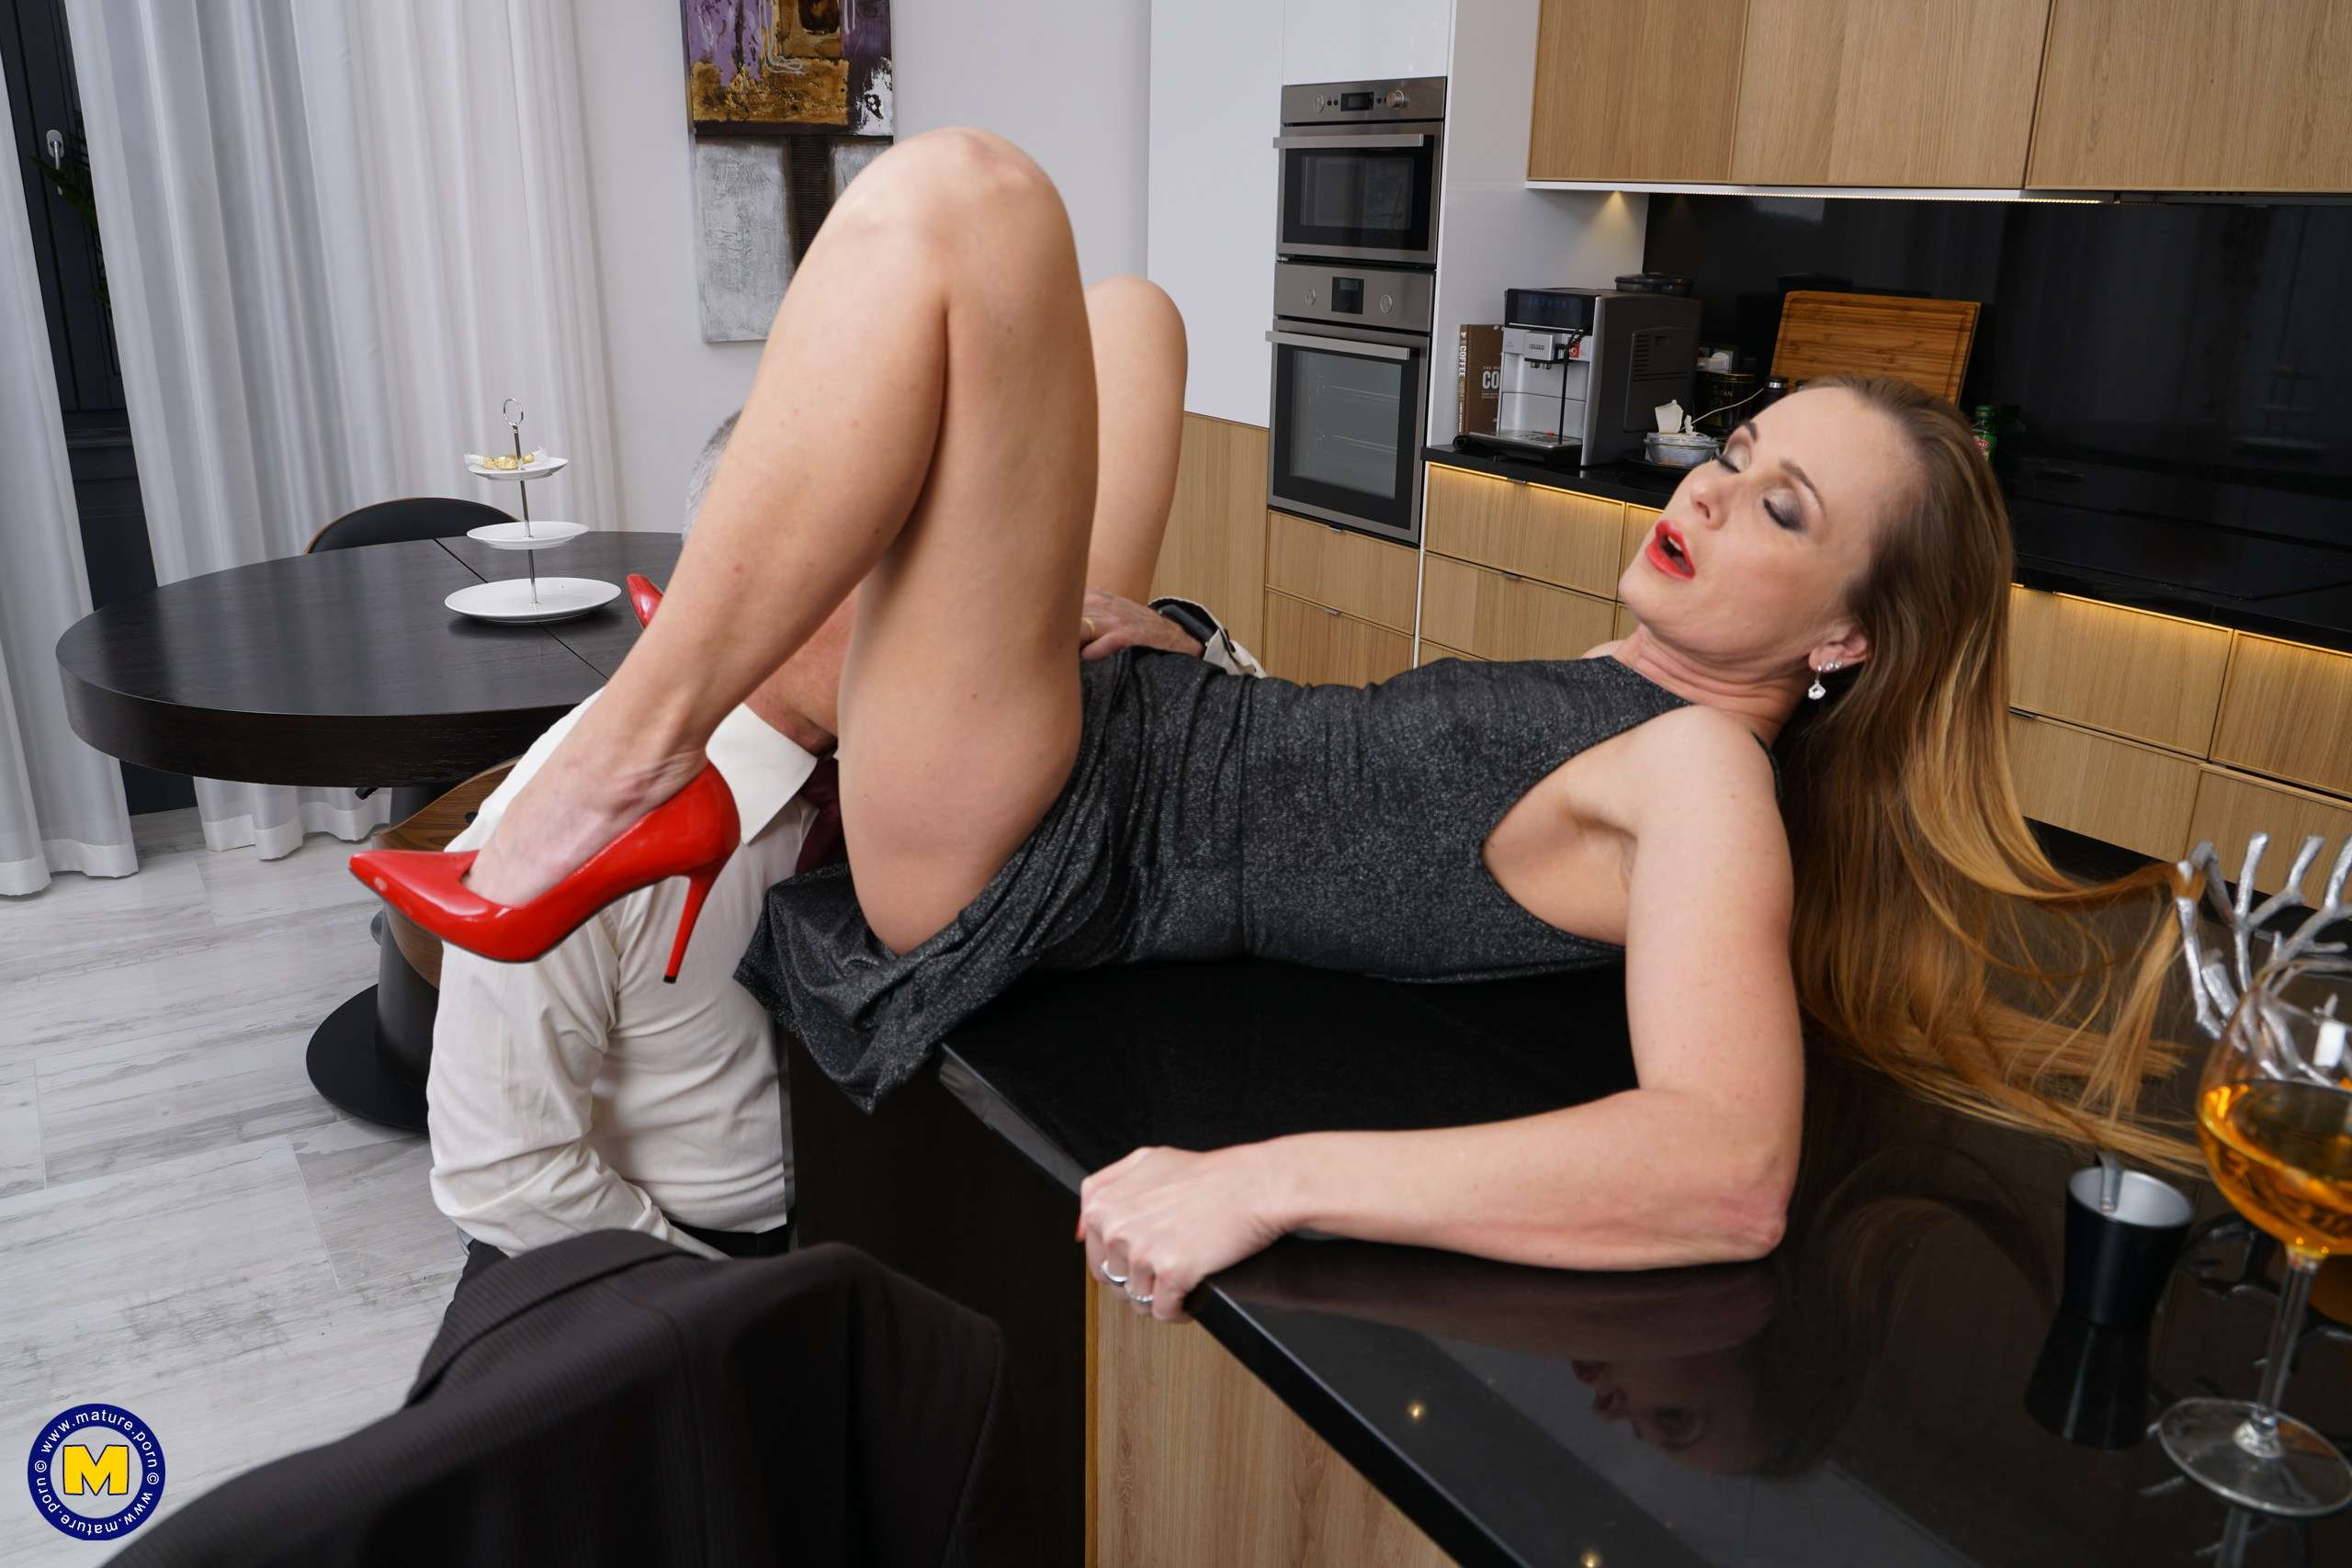 Naughty housewife Nika getting busy in her kitchen